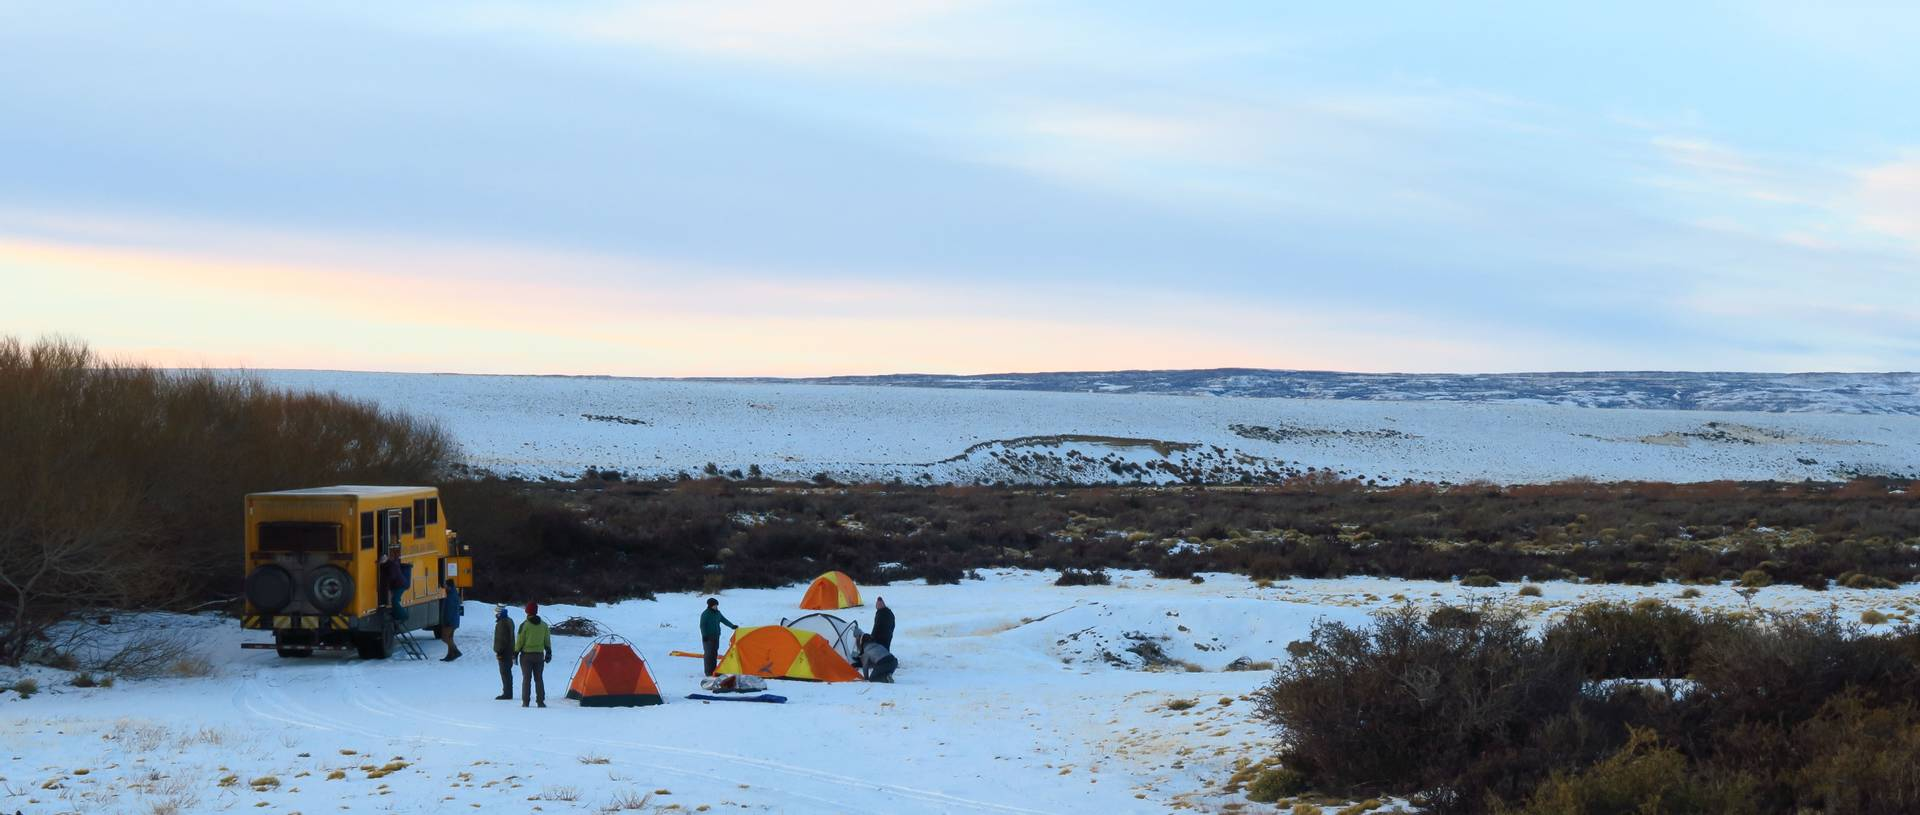 Oasis Overland camping in the snow in Patagonia.JPG